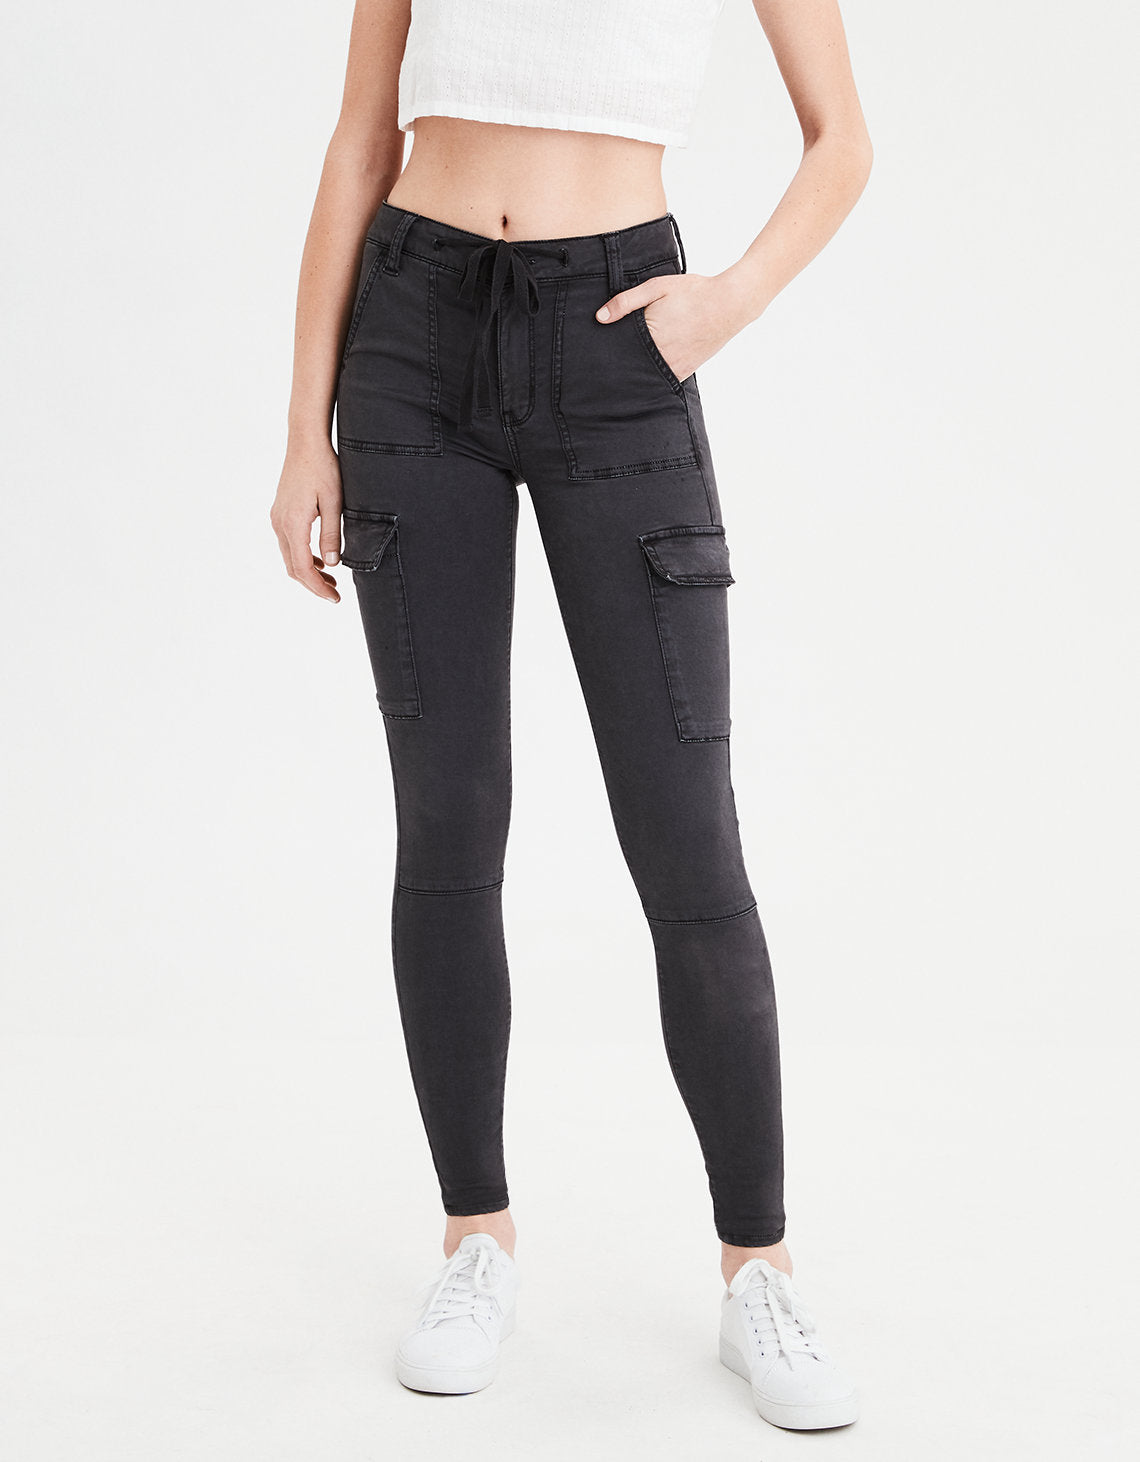 best authentic 2019 clearance sale attractive price High-Waisted Jegging in Faded Black